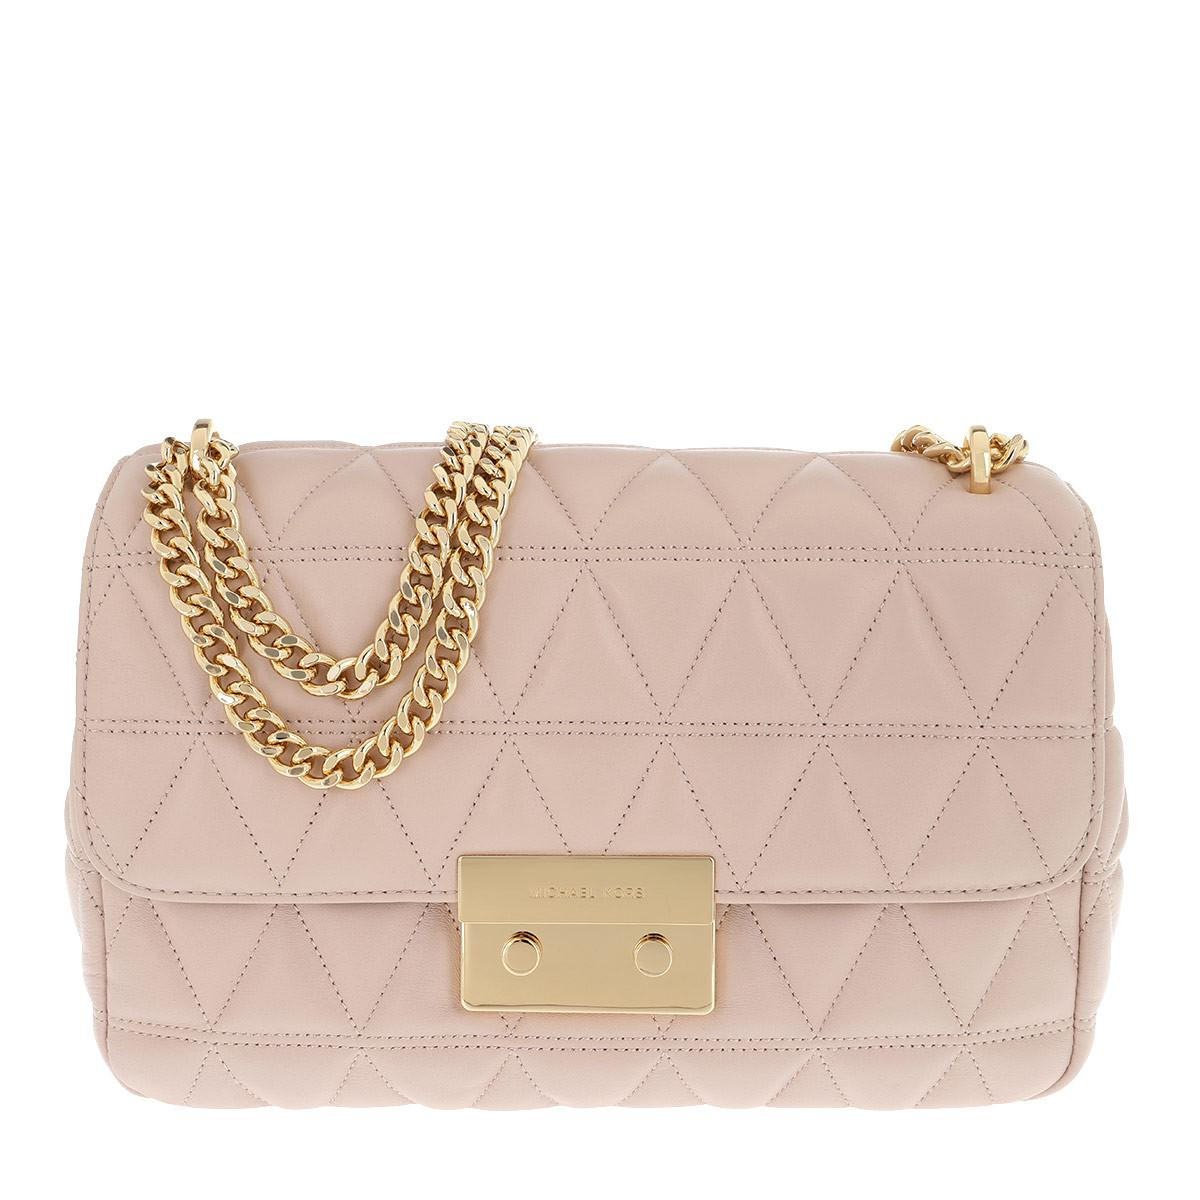 e14699624a7 Gallery. Previously sold at  Fashionette · Women s Chain Strap Bags Women s  Michael By Michael Kors Sloan ...